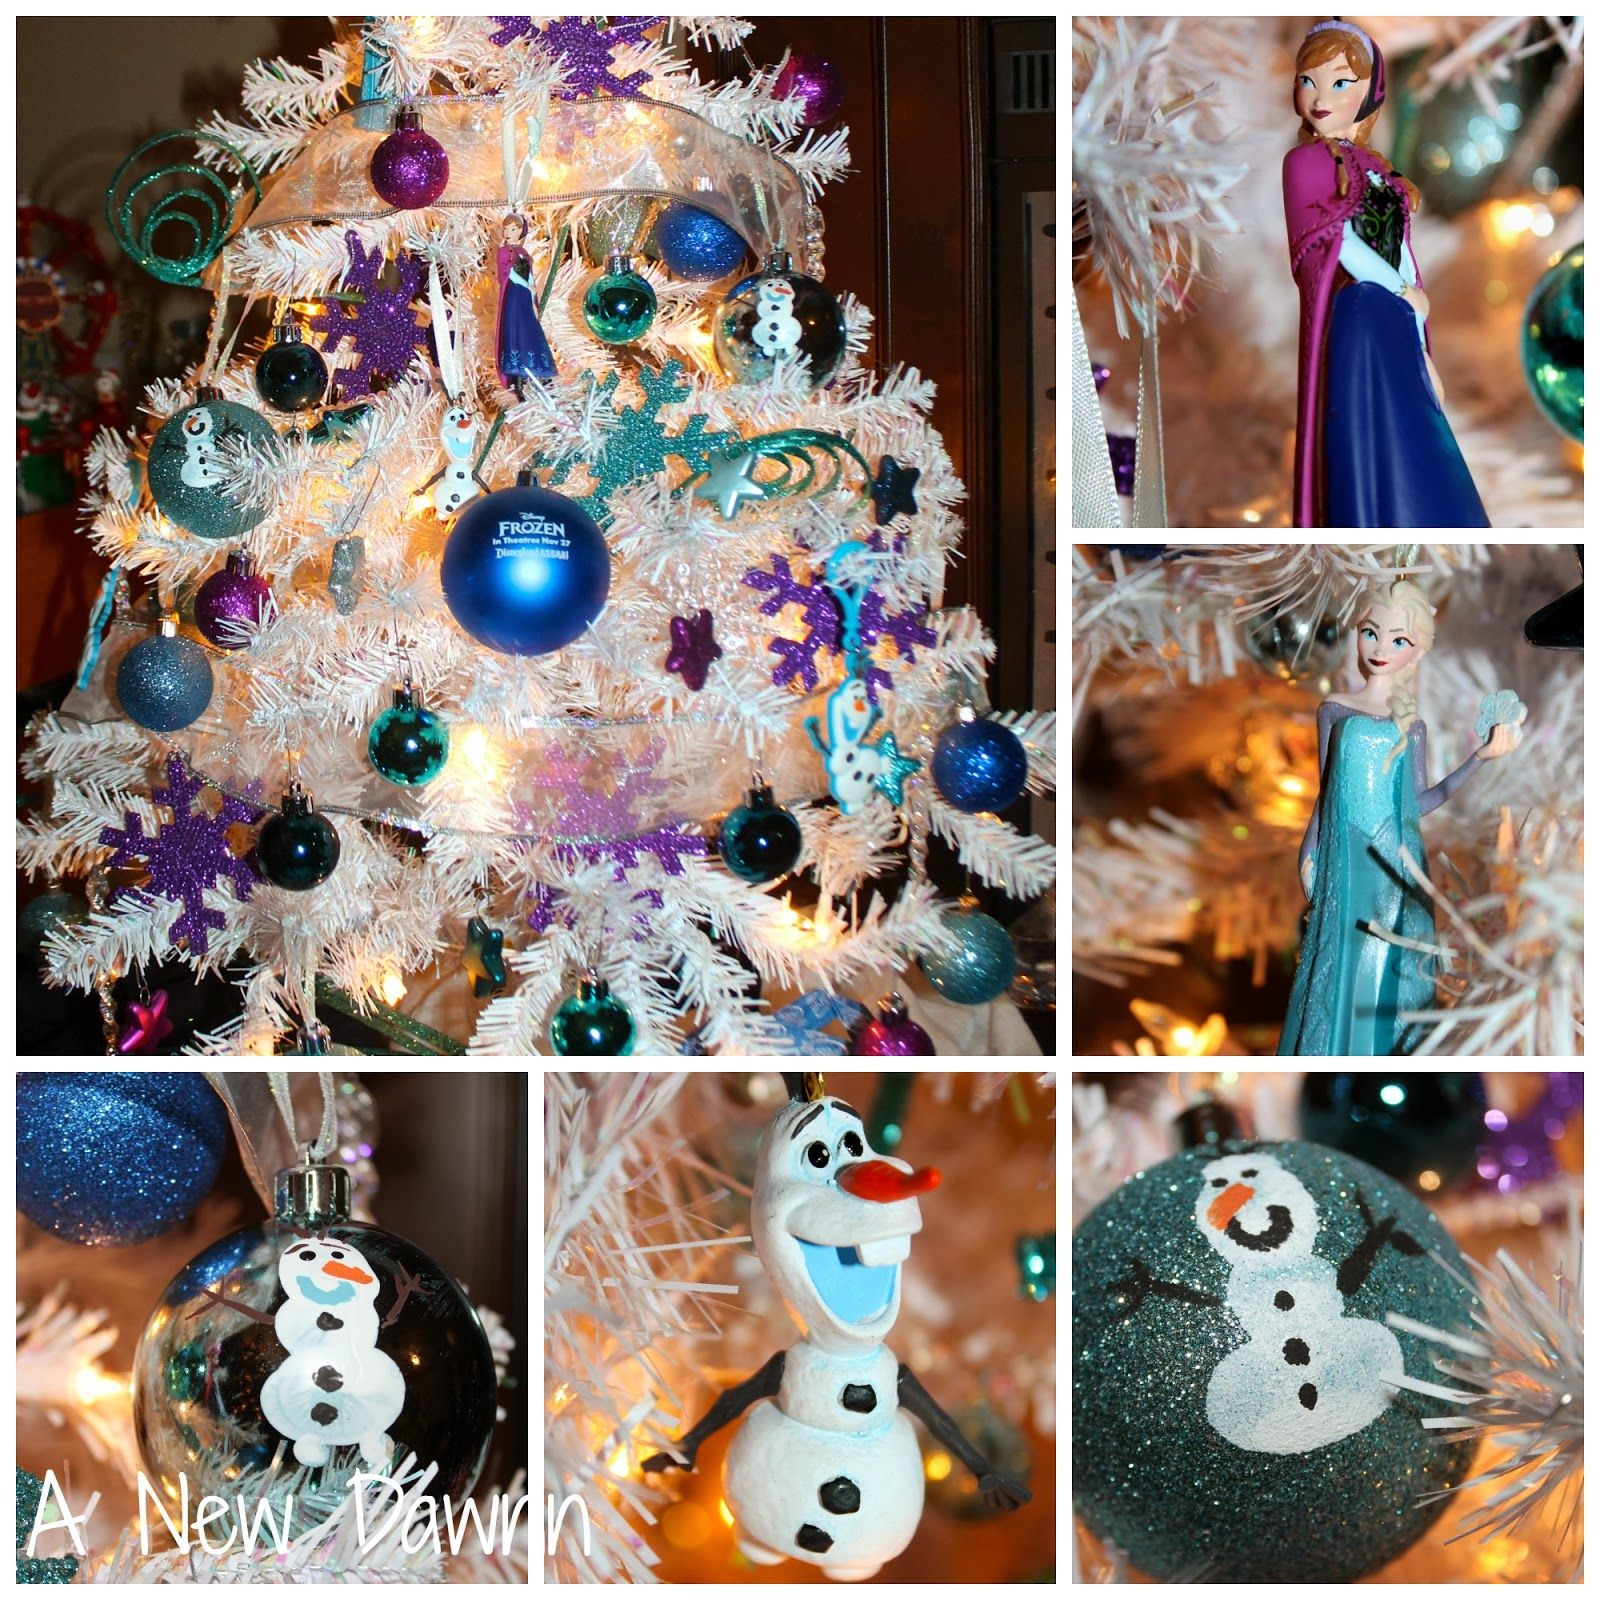 Disney s frozen themed christmas tree with handmade ornaments included